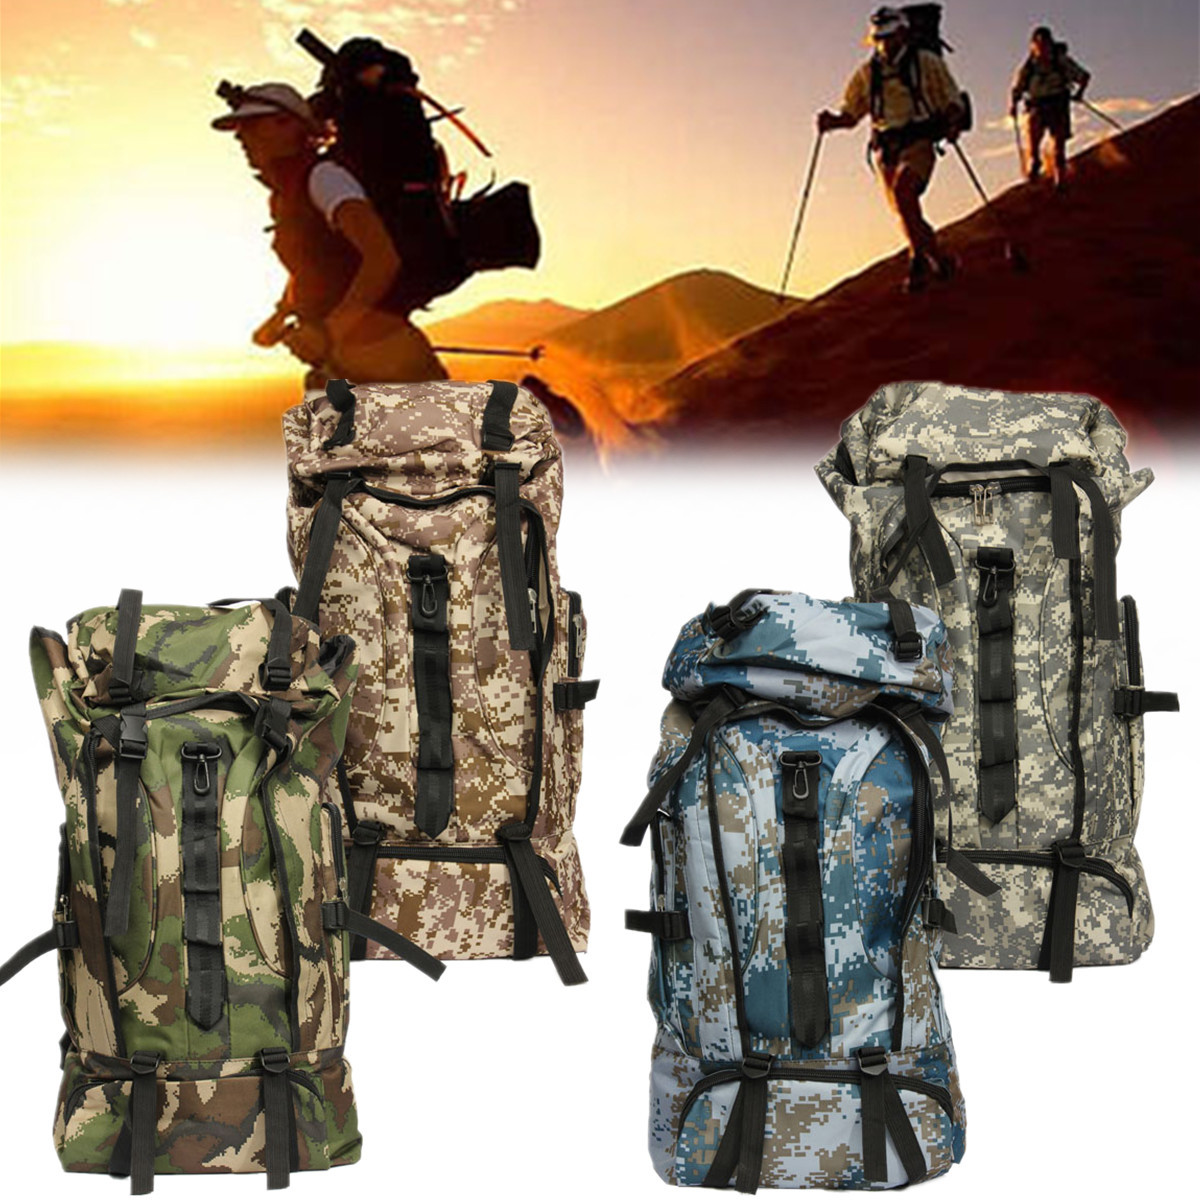 80L Nylon Outdoor Military Army Tactical Backpack Trekking Travel Sport Molle Bag Camouflage Rucksack Camping Hiking bags sinairsoft outdoor military tactical backpack trekking sport travel 25l nylon camping hiking trekking camouflage bag ly0062